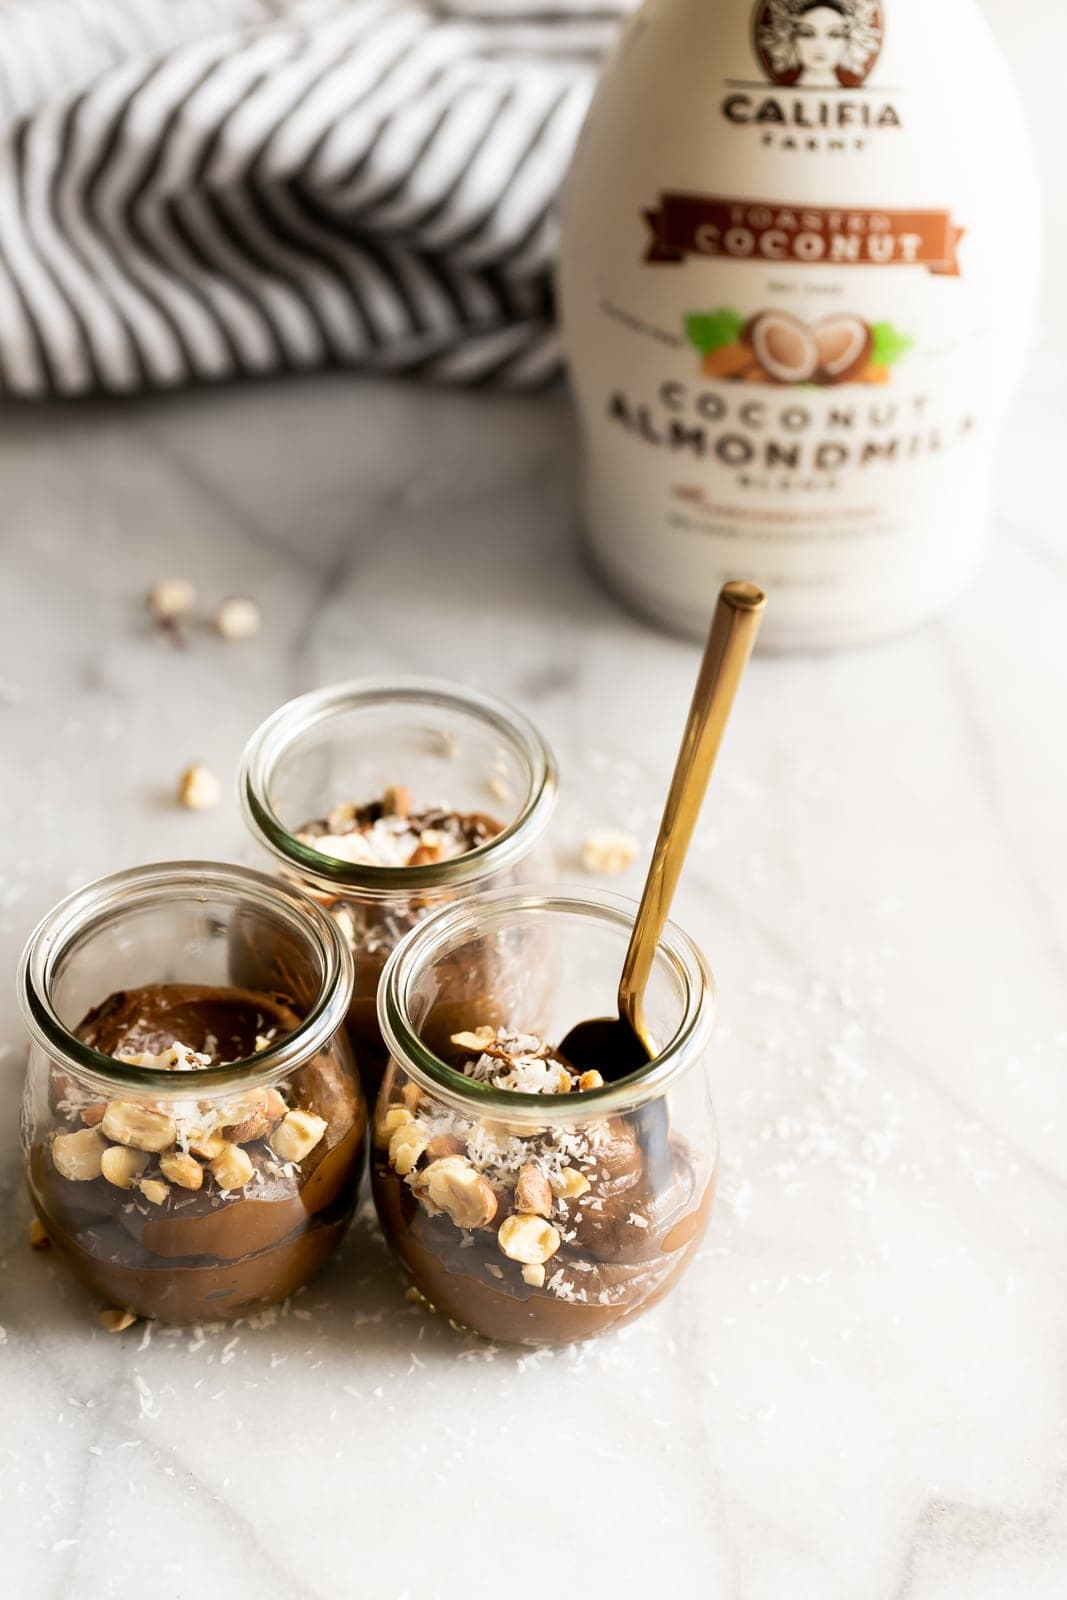 A creamy dairy-free avocado chocolate mousse made with just 5 ingredients then topped with coconut flakes and chopped hazelnuts!